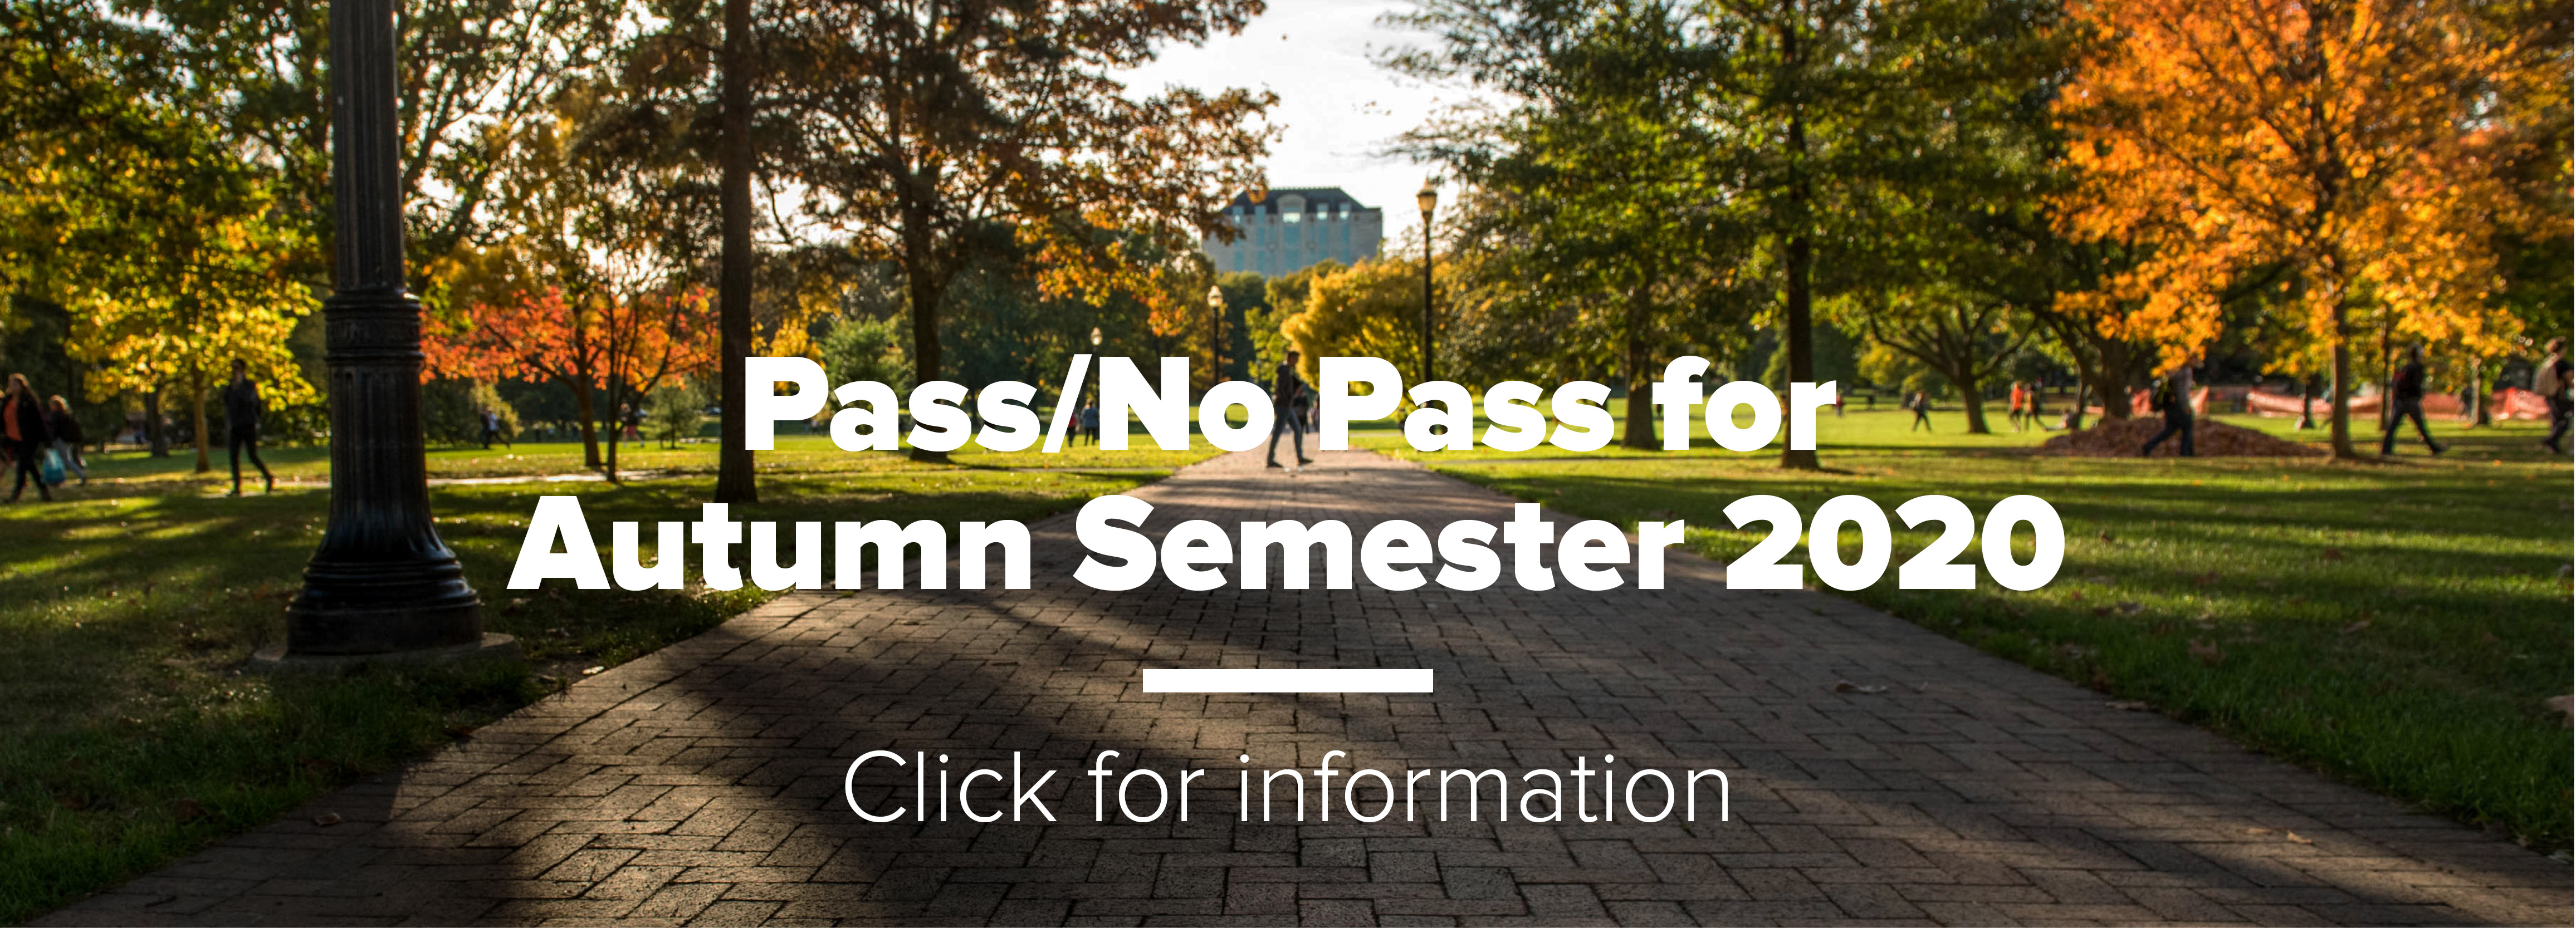 Pass/No Pass for Autumn Semester 2020 – Click for information